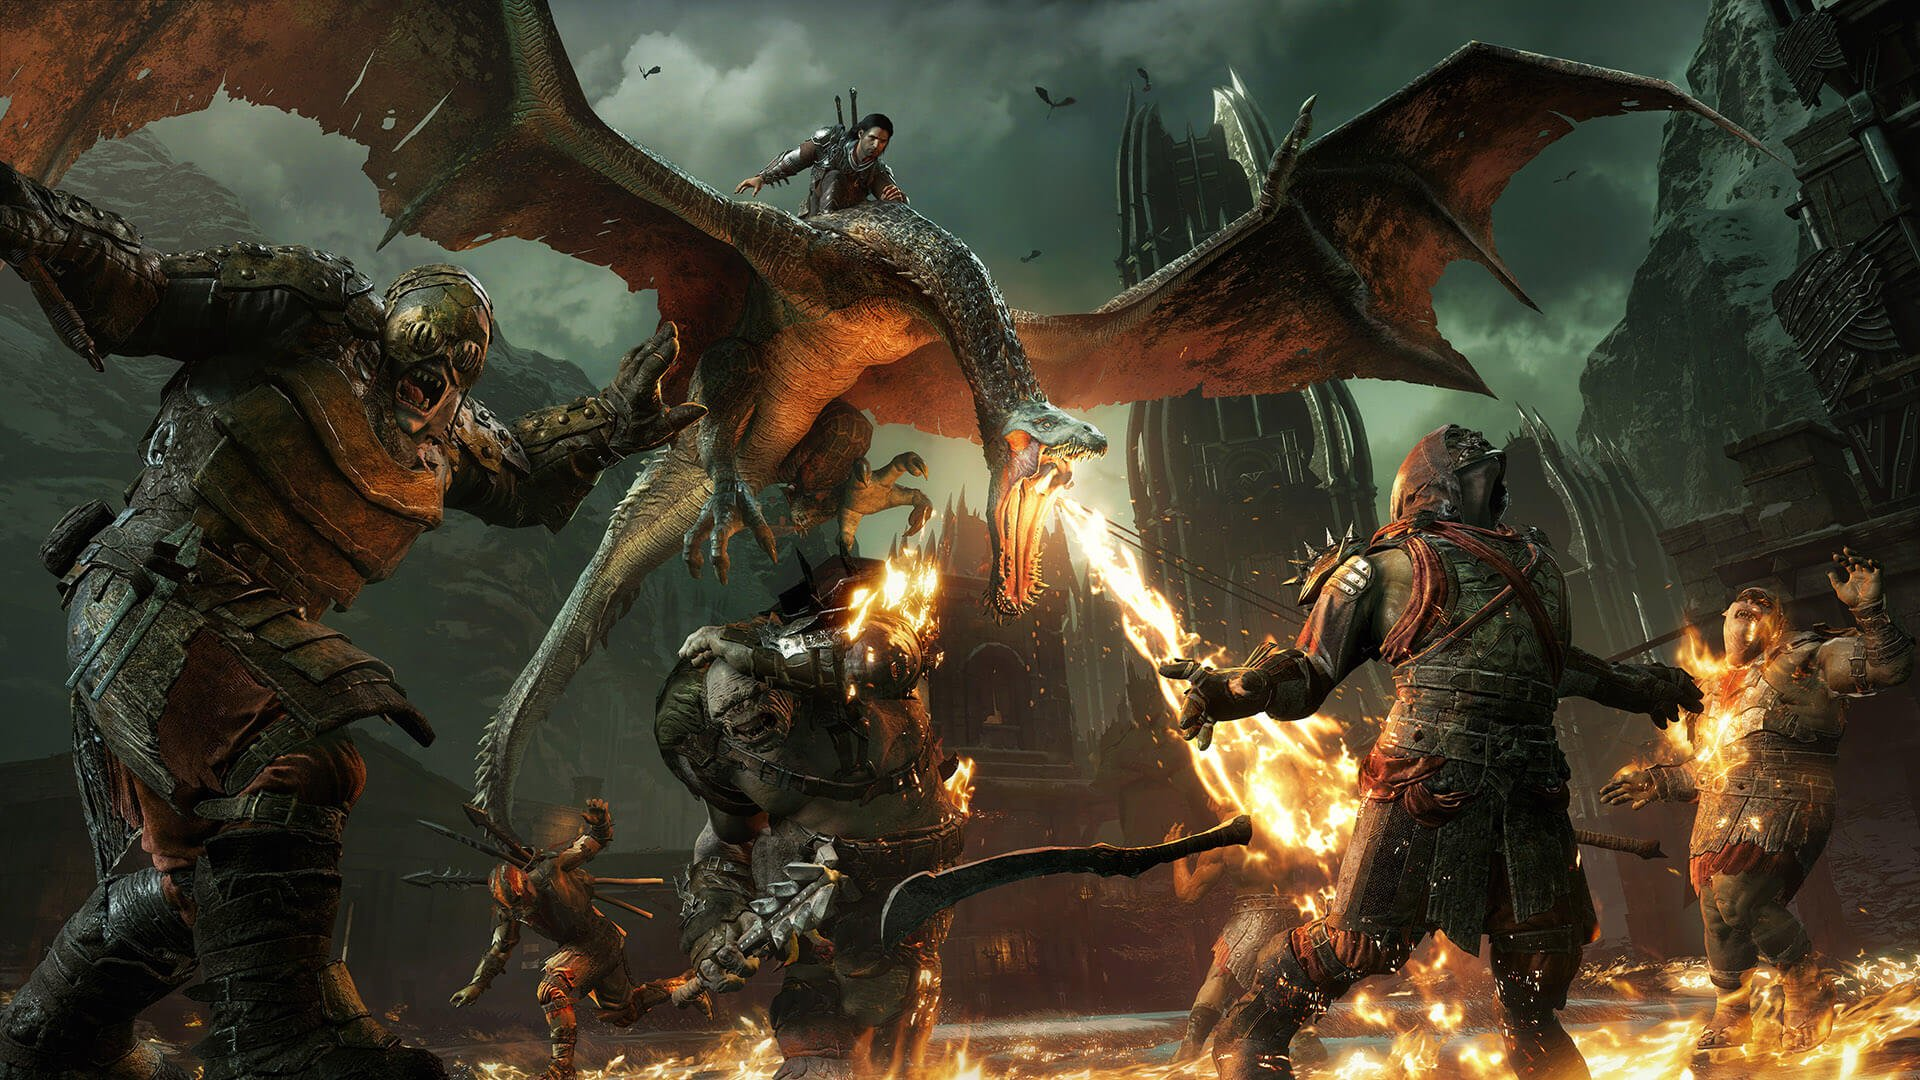 Story Trailer for Middle-earth: Shadow of War Revealed